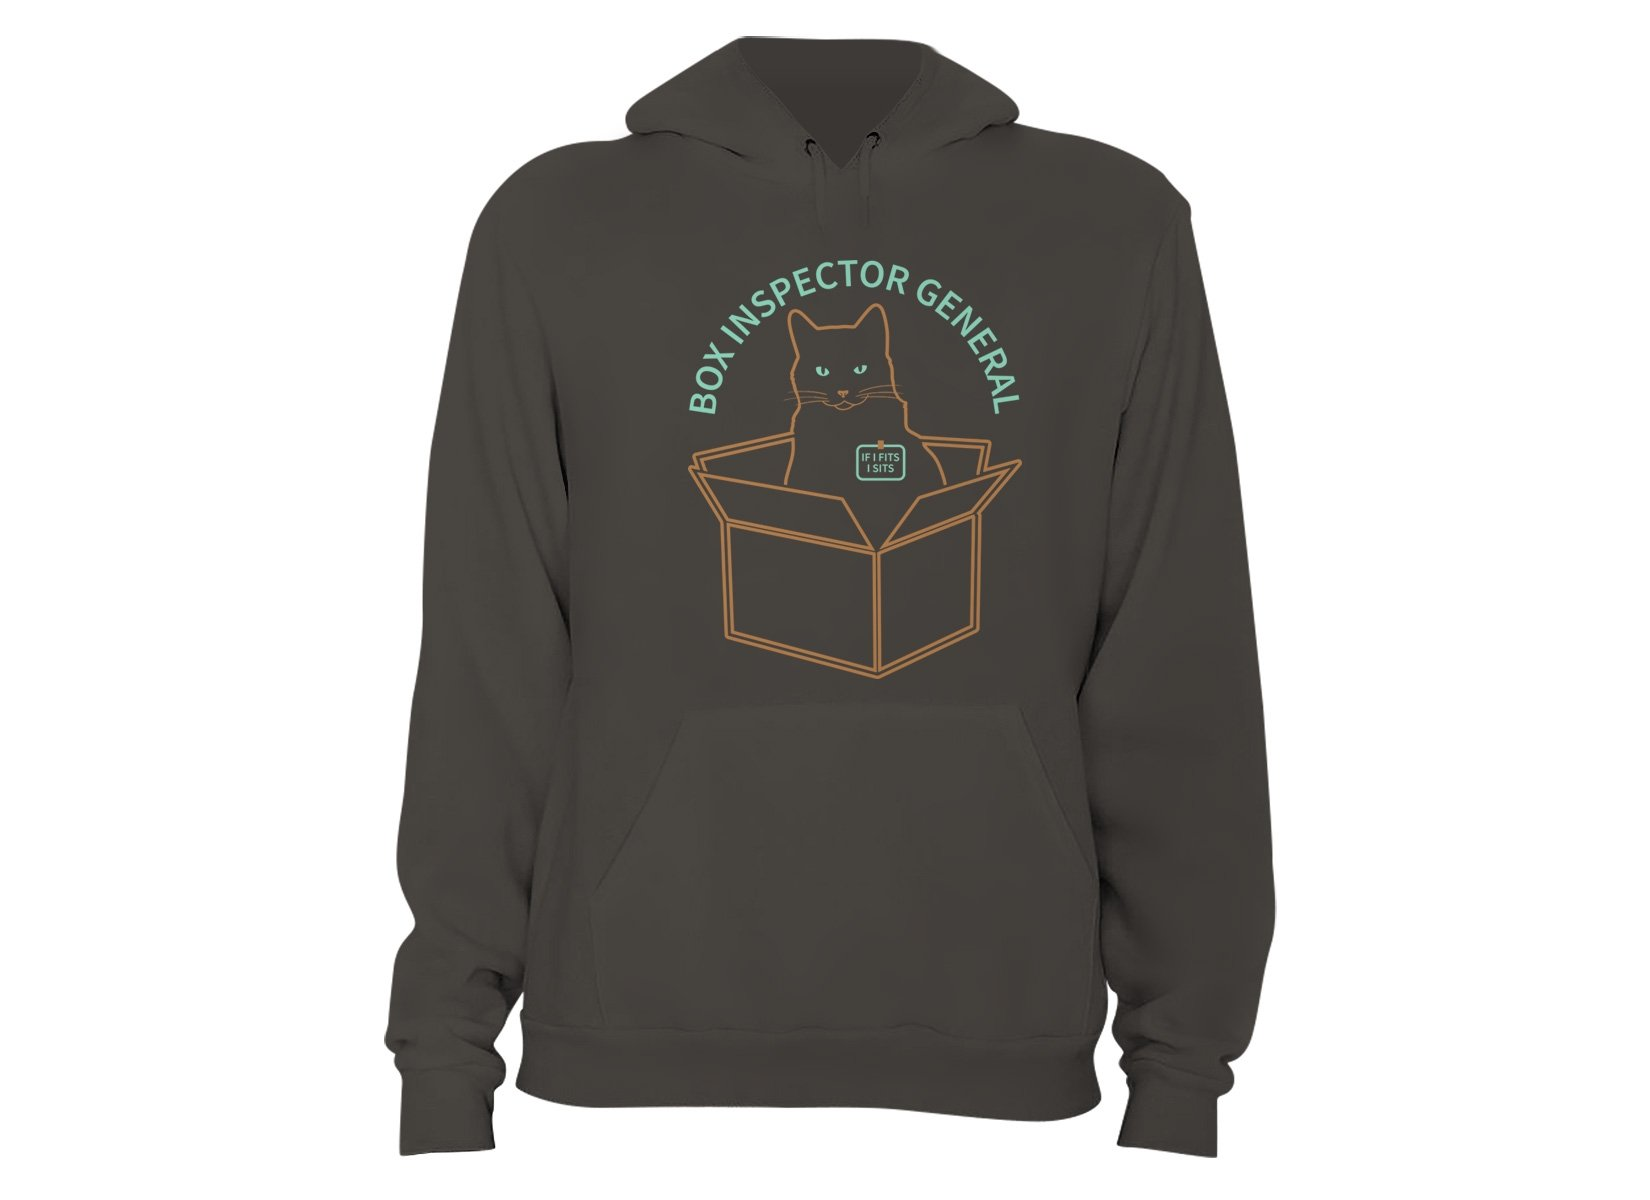 Box Inspector General on Hoodie